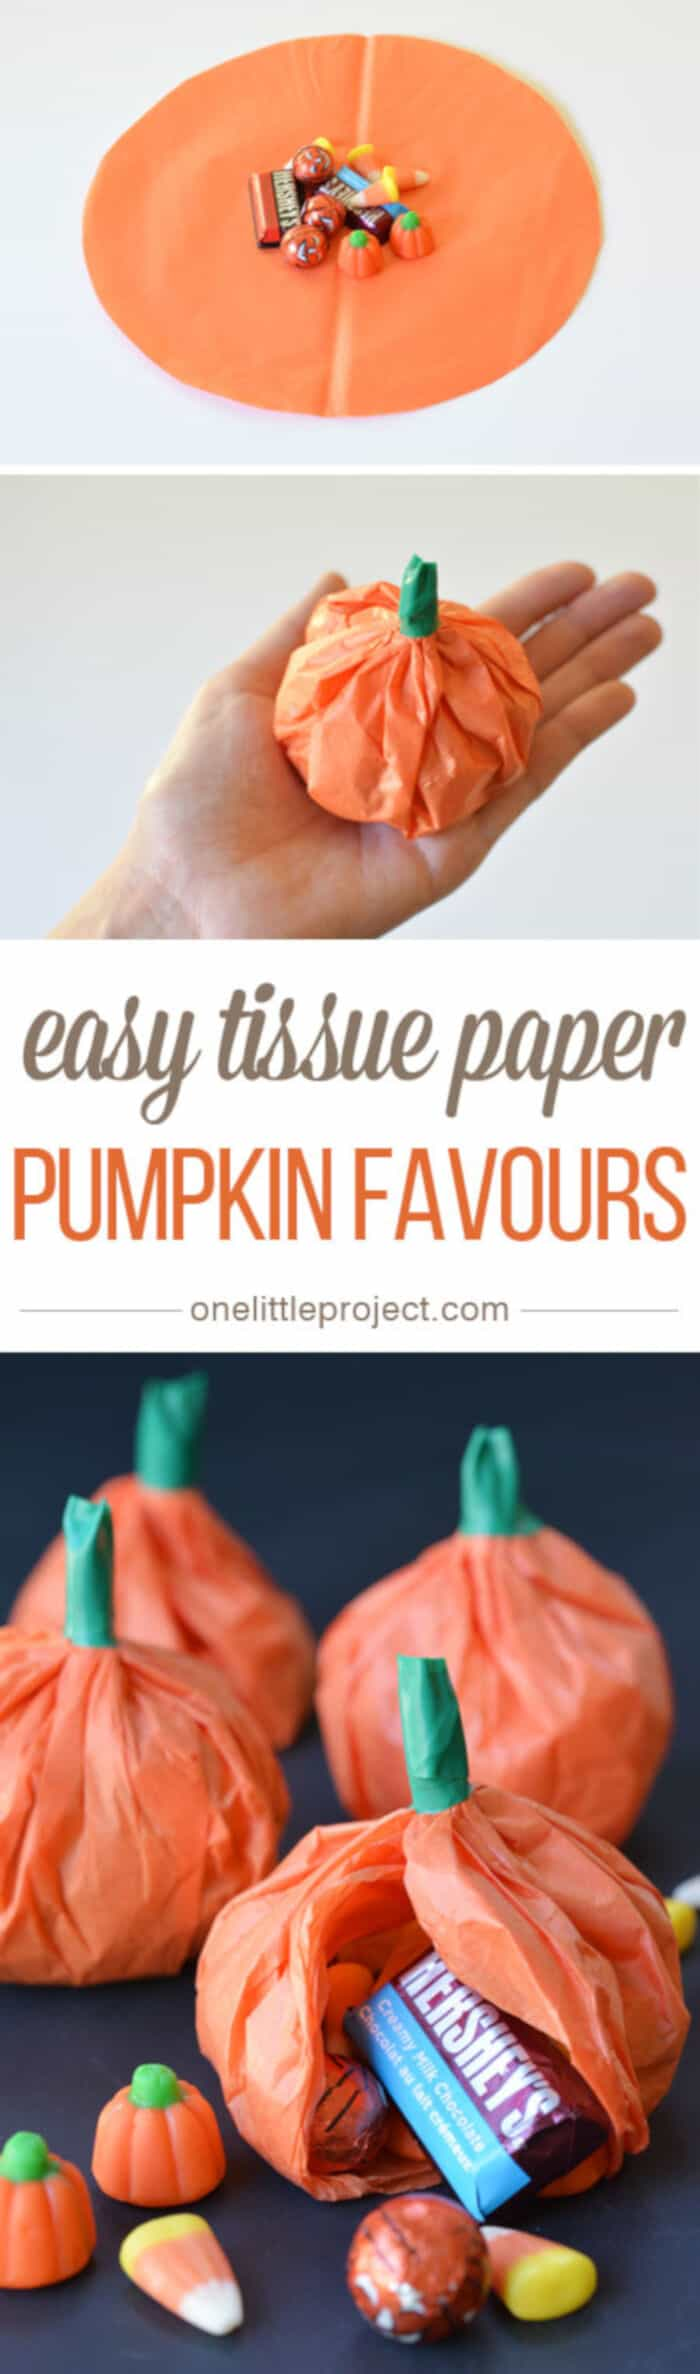 Easy-Tissue-Paper-Pumpkin-Favours-by-One-Little-Project